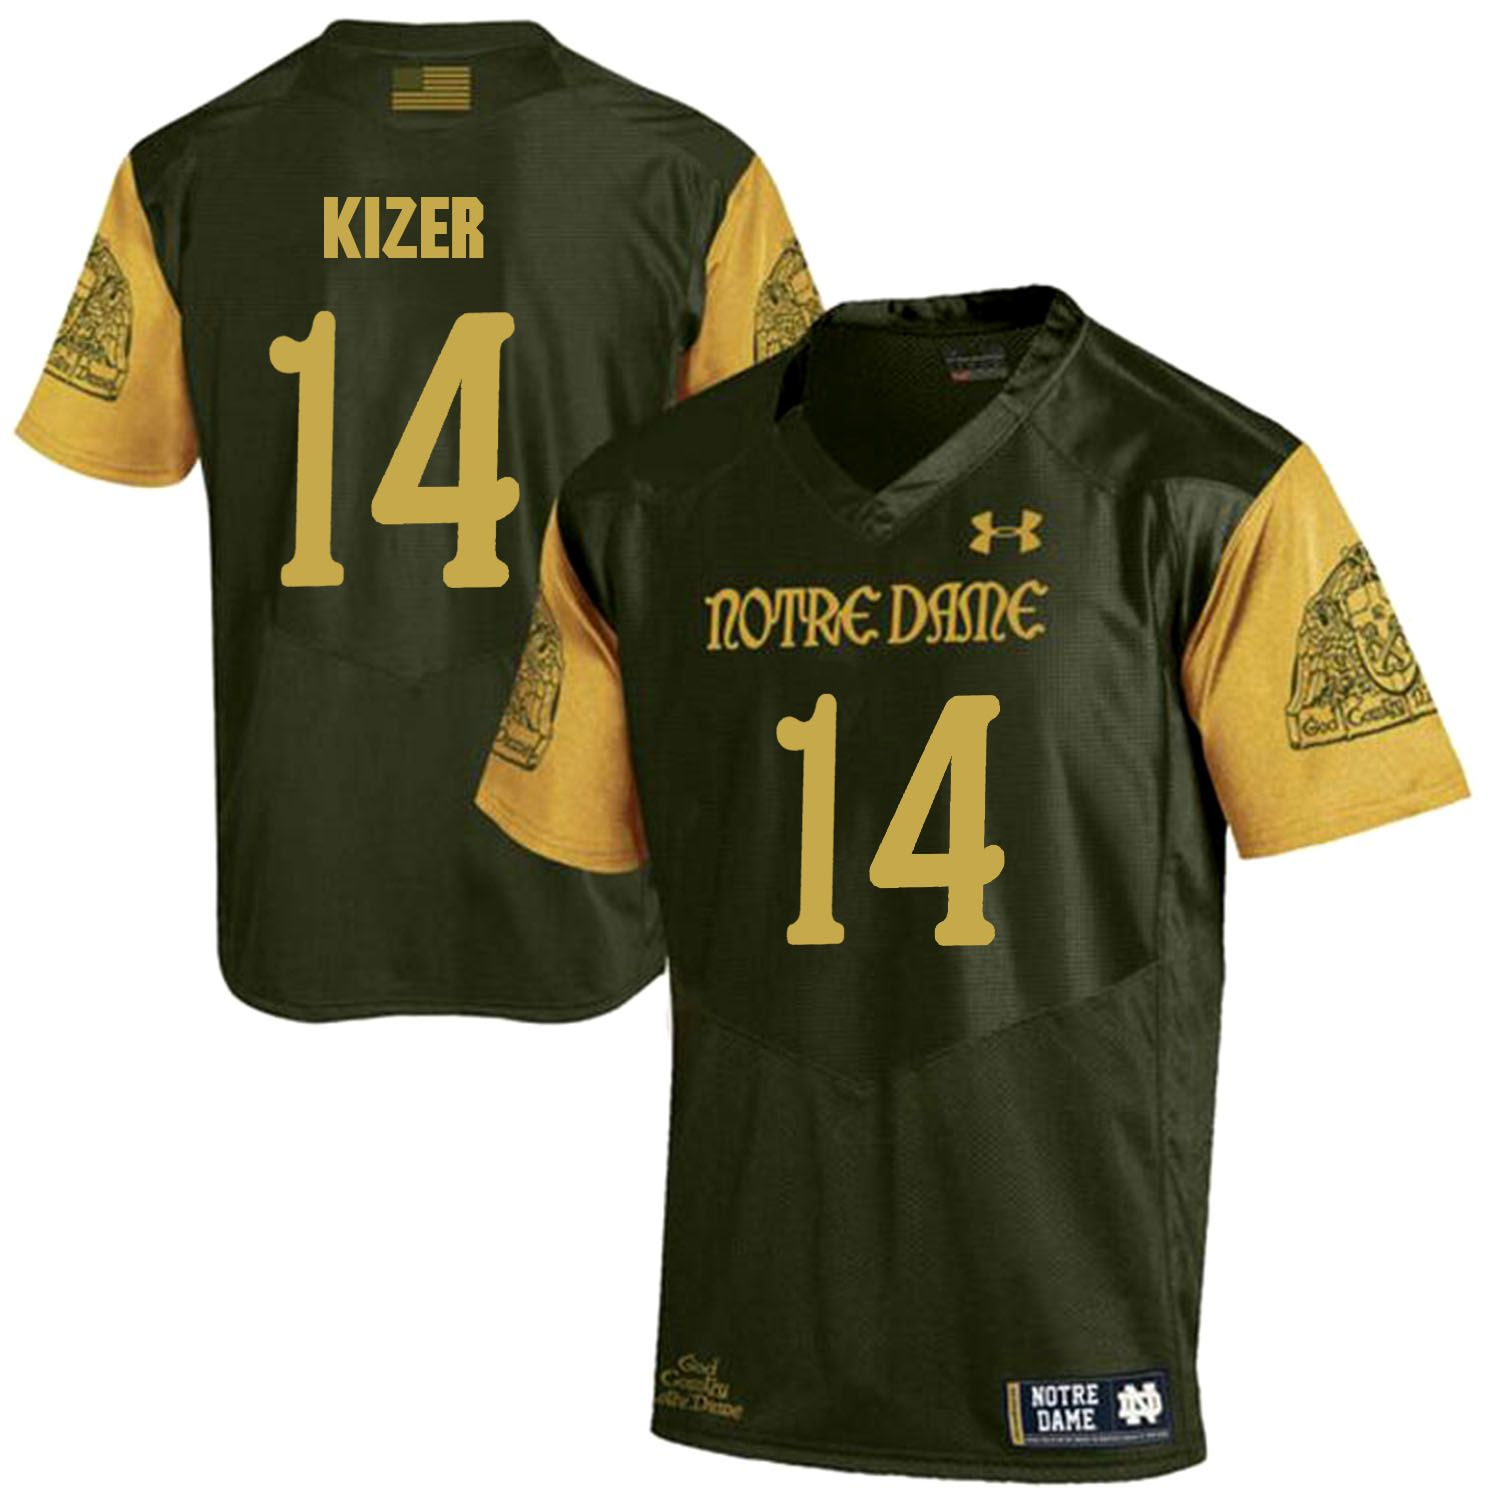 Men Norte Dame Fighting Irish 14 Kizer Green Customized NCAA Jerseys